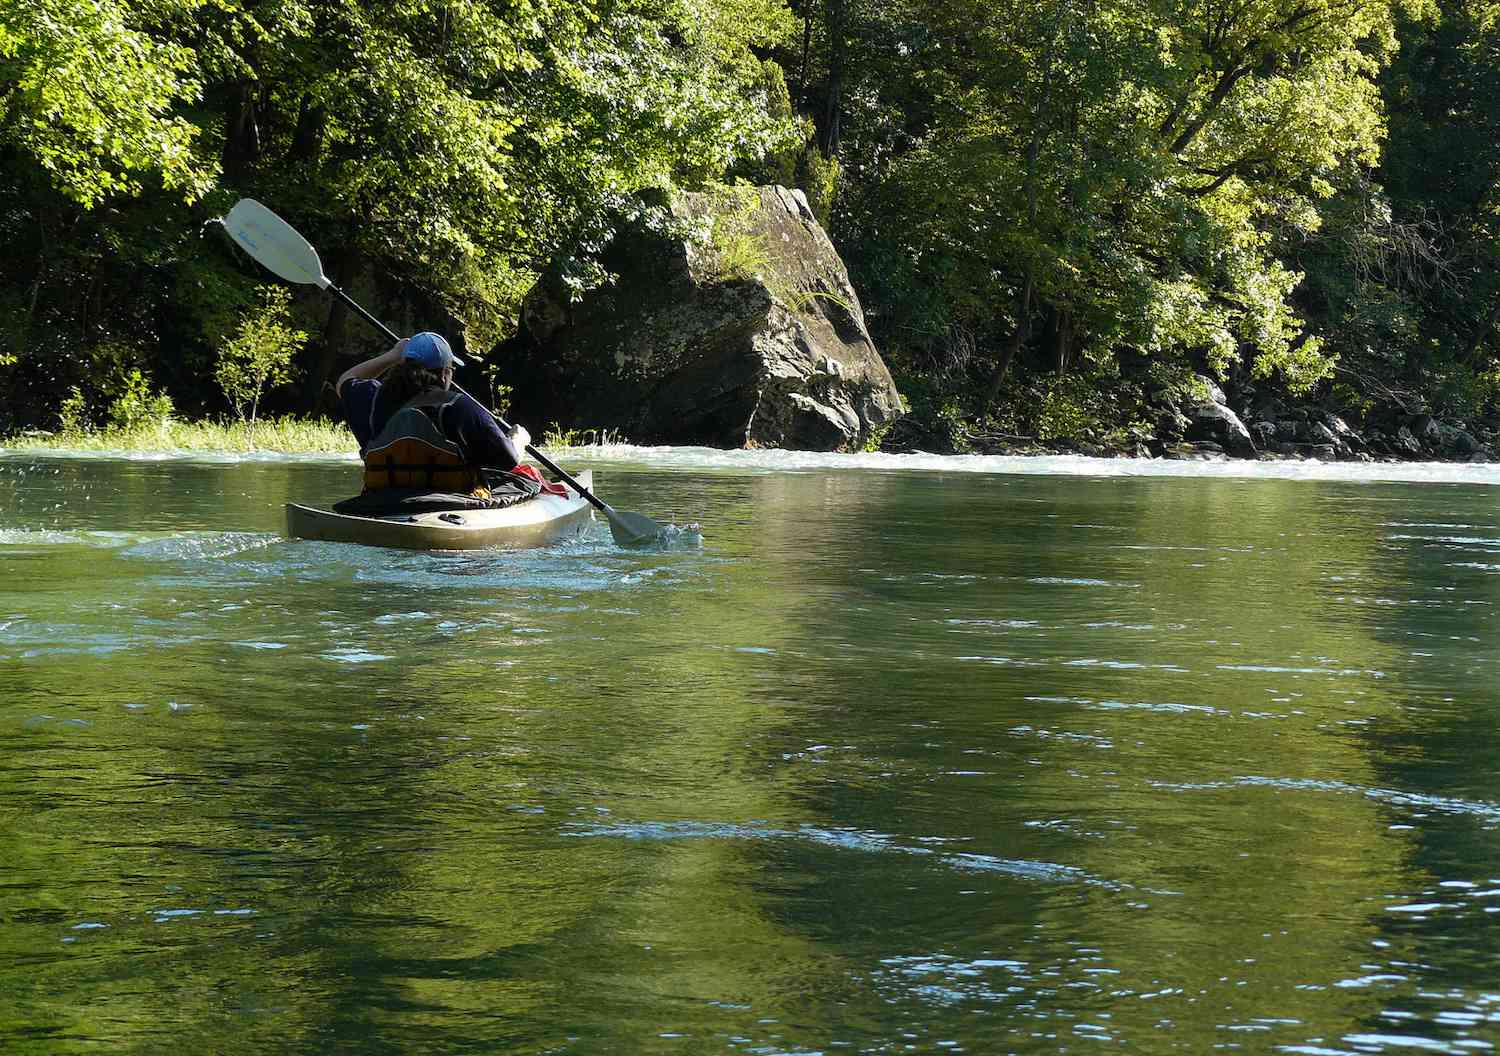 A canoeist paddles down the Mulberry River in Arkansas